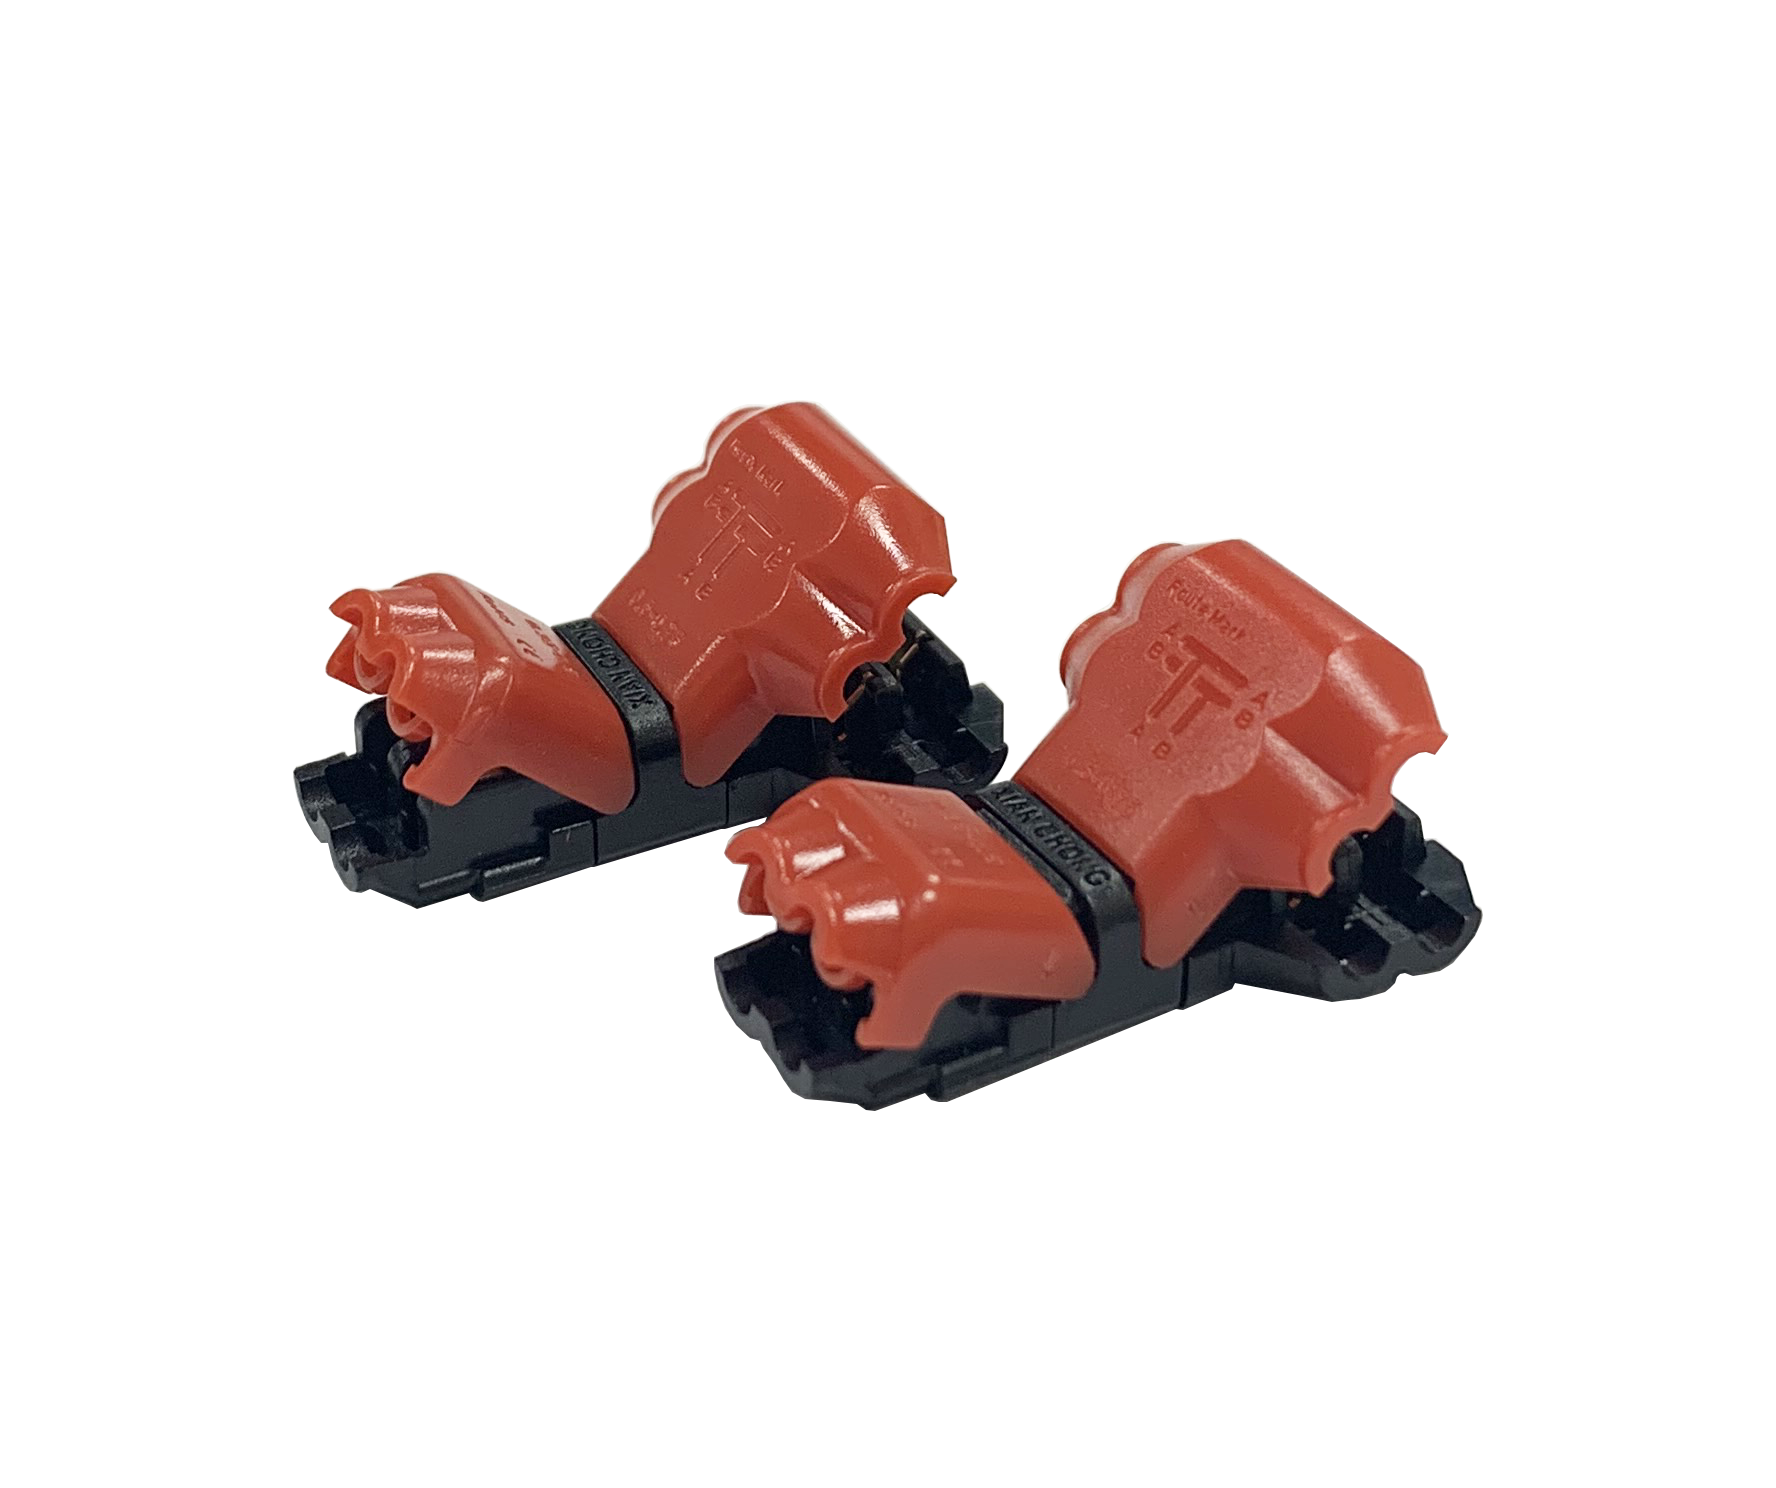 FluxTech -  Low Voltage Solder-less T Shape Wire connectors